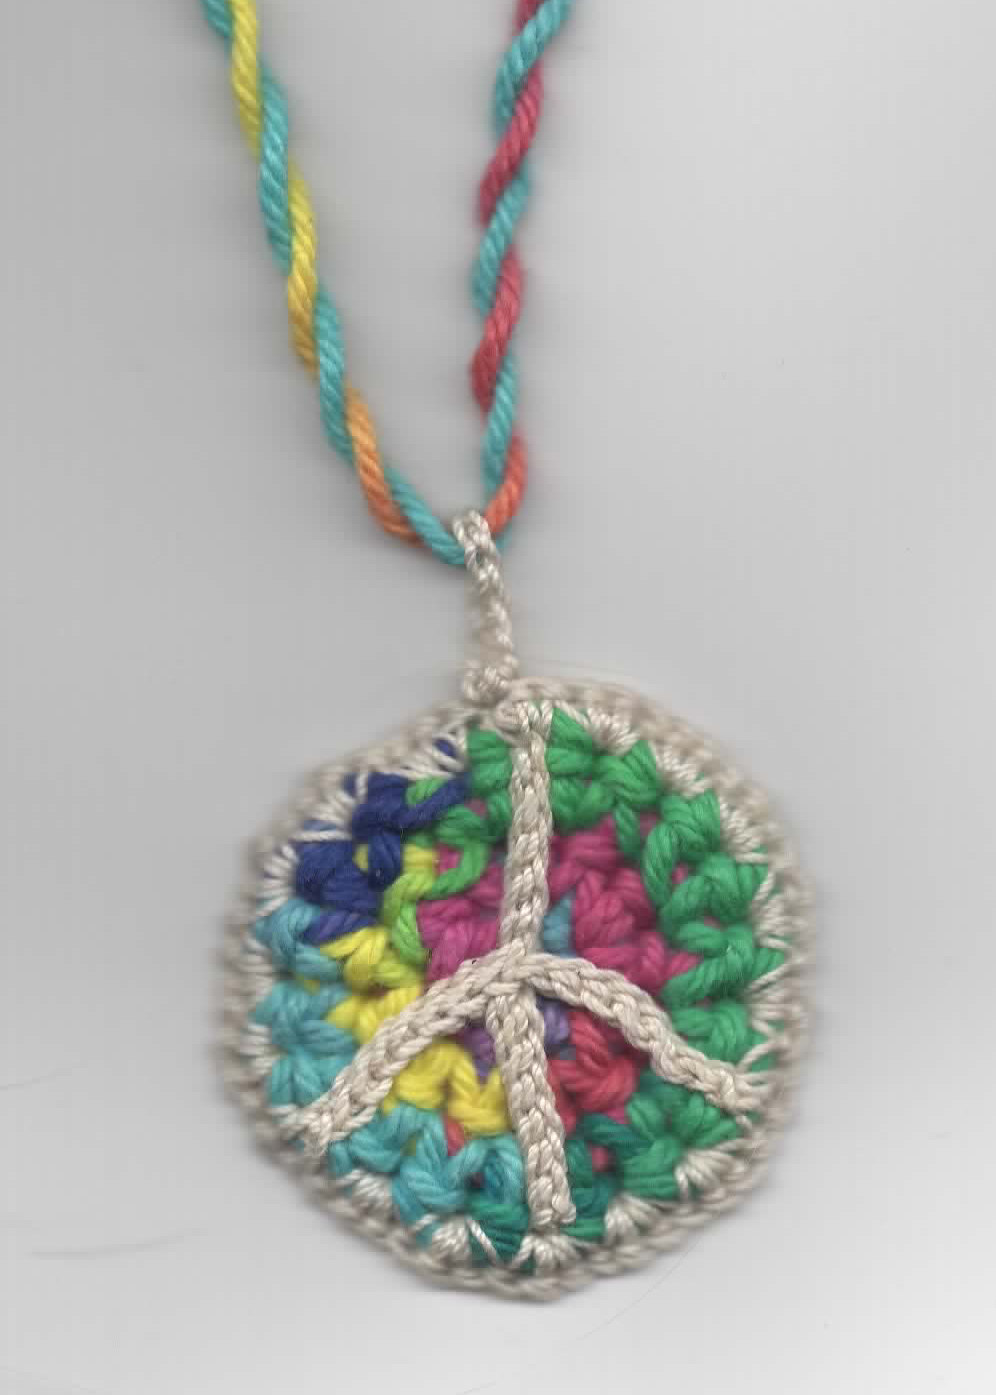 Crochet peace symbol pendant- with pattern!